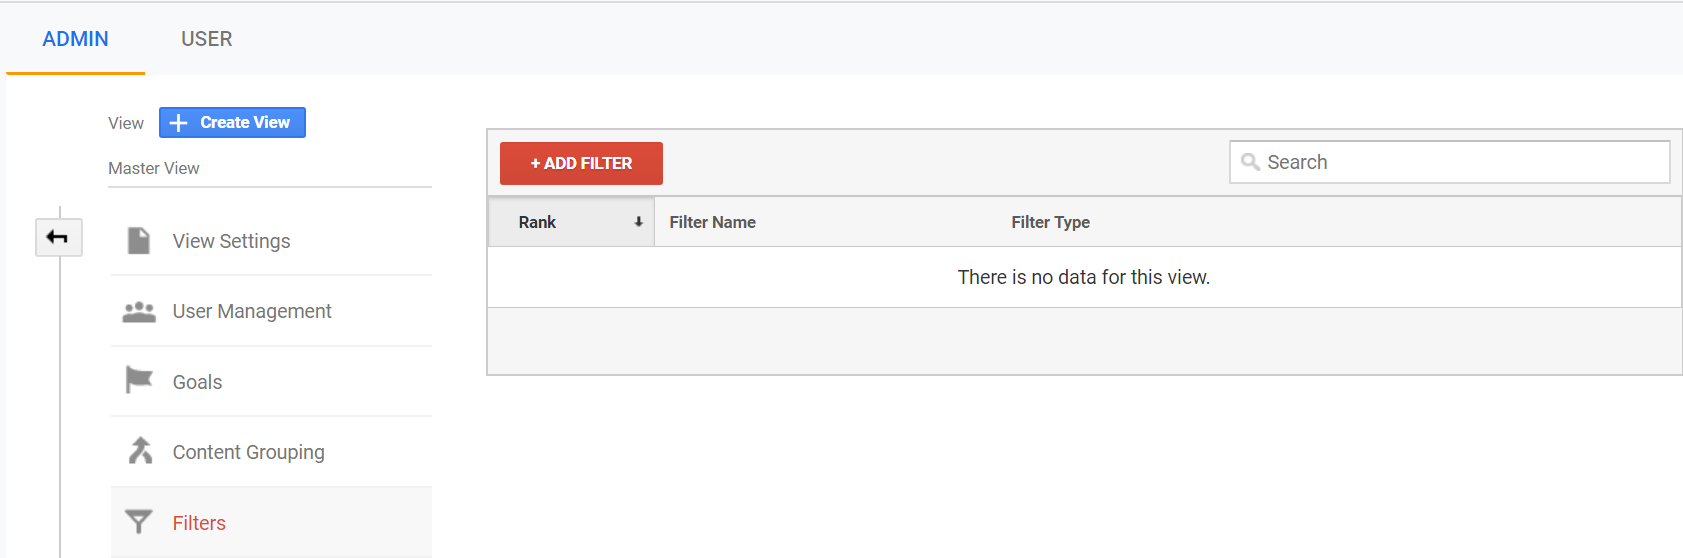 How to add a google analytics filte